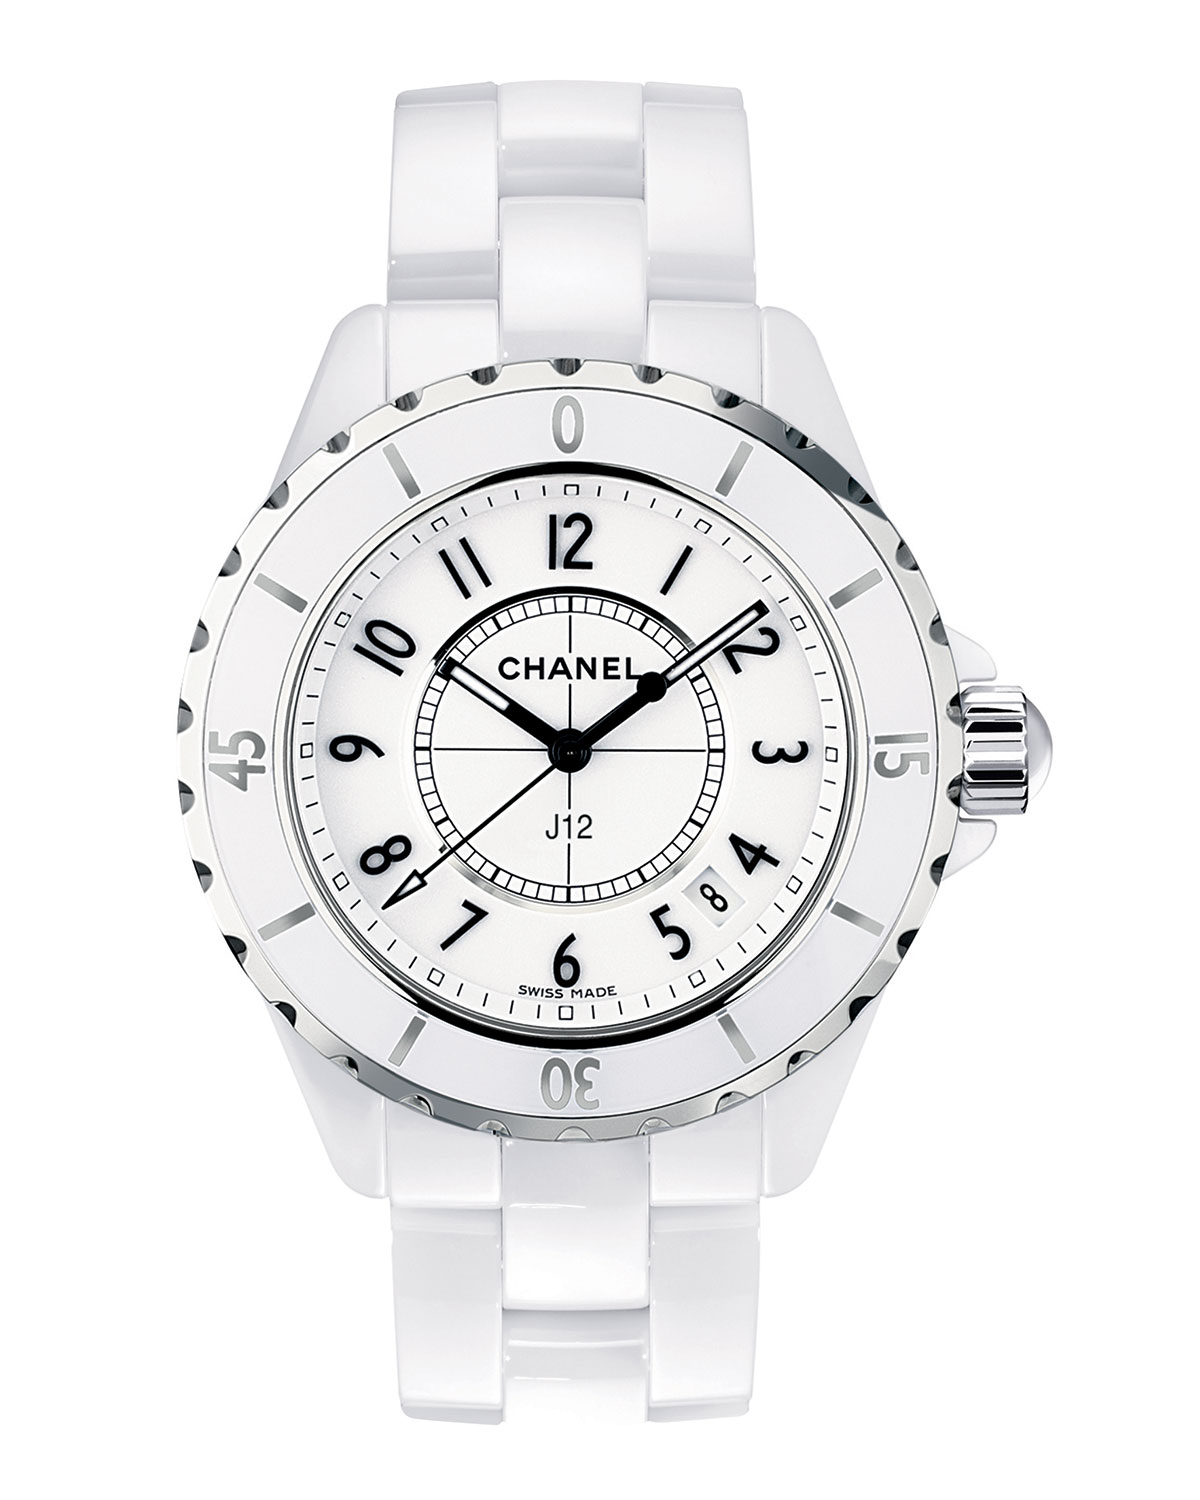 CHANEL J12 33mm White Ceramic Watch